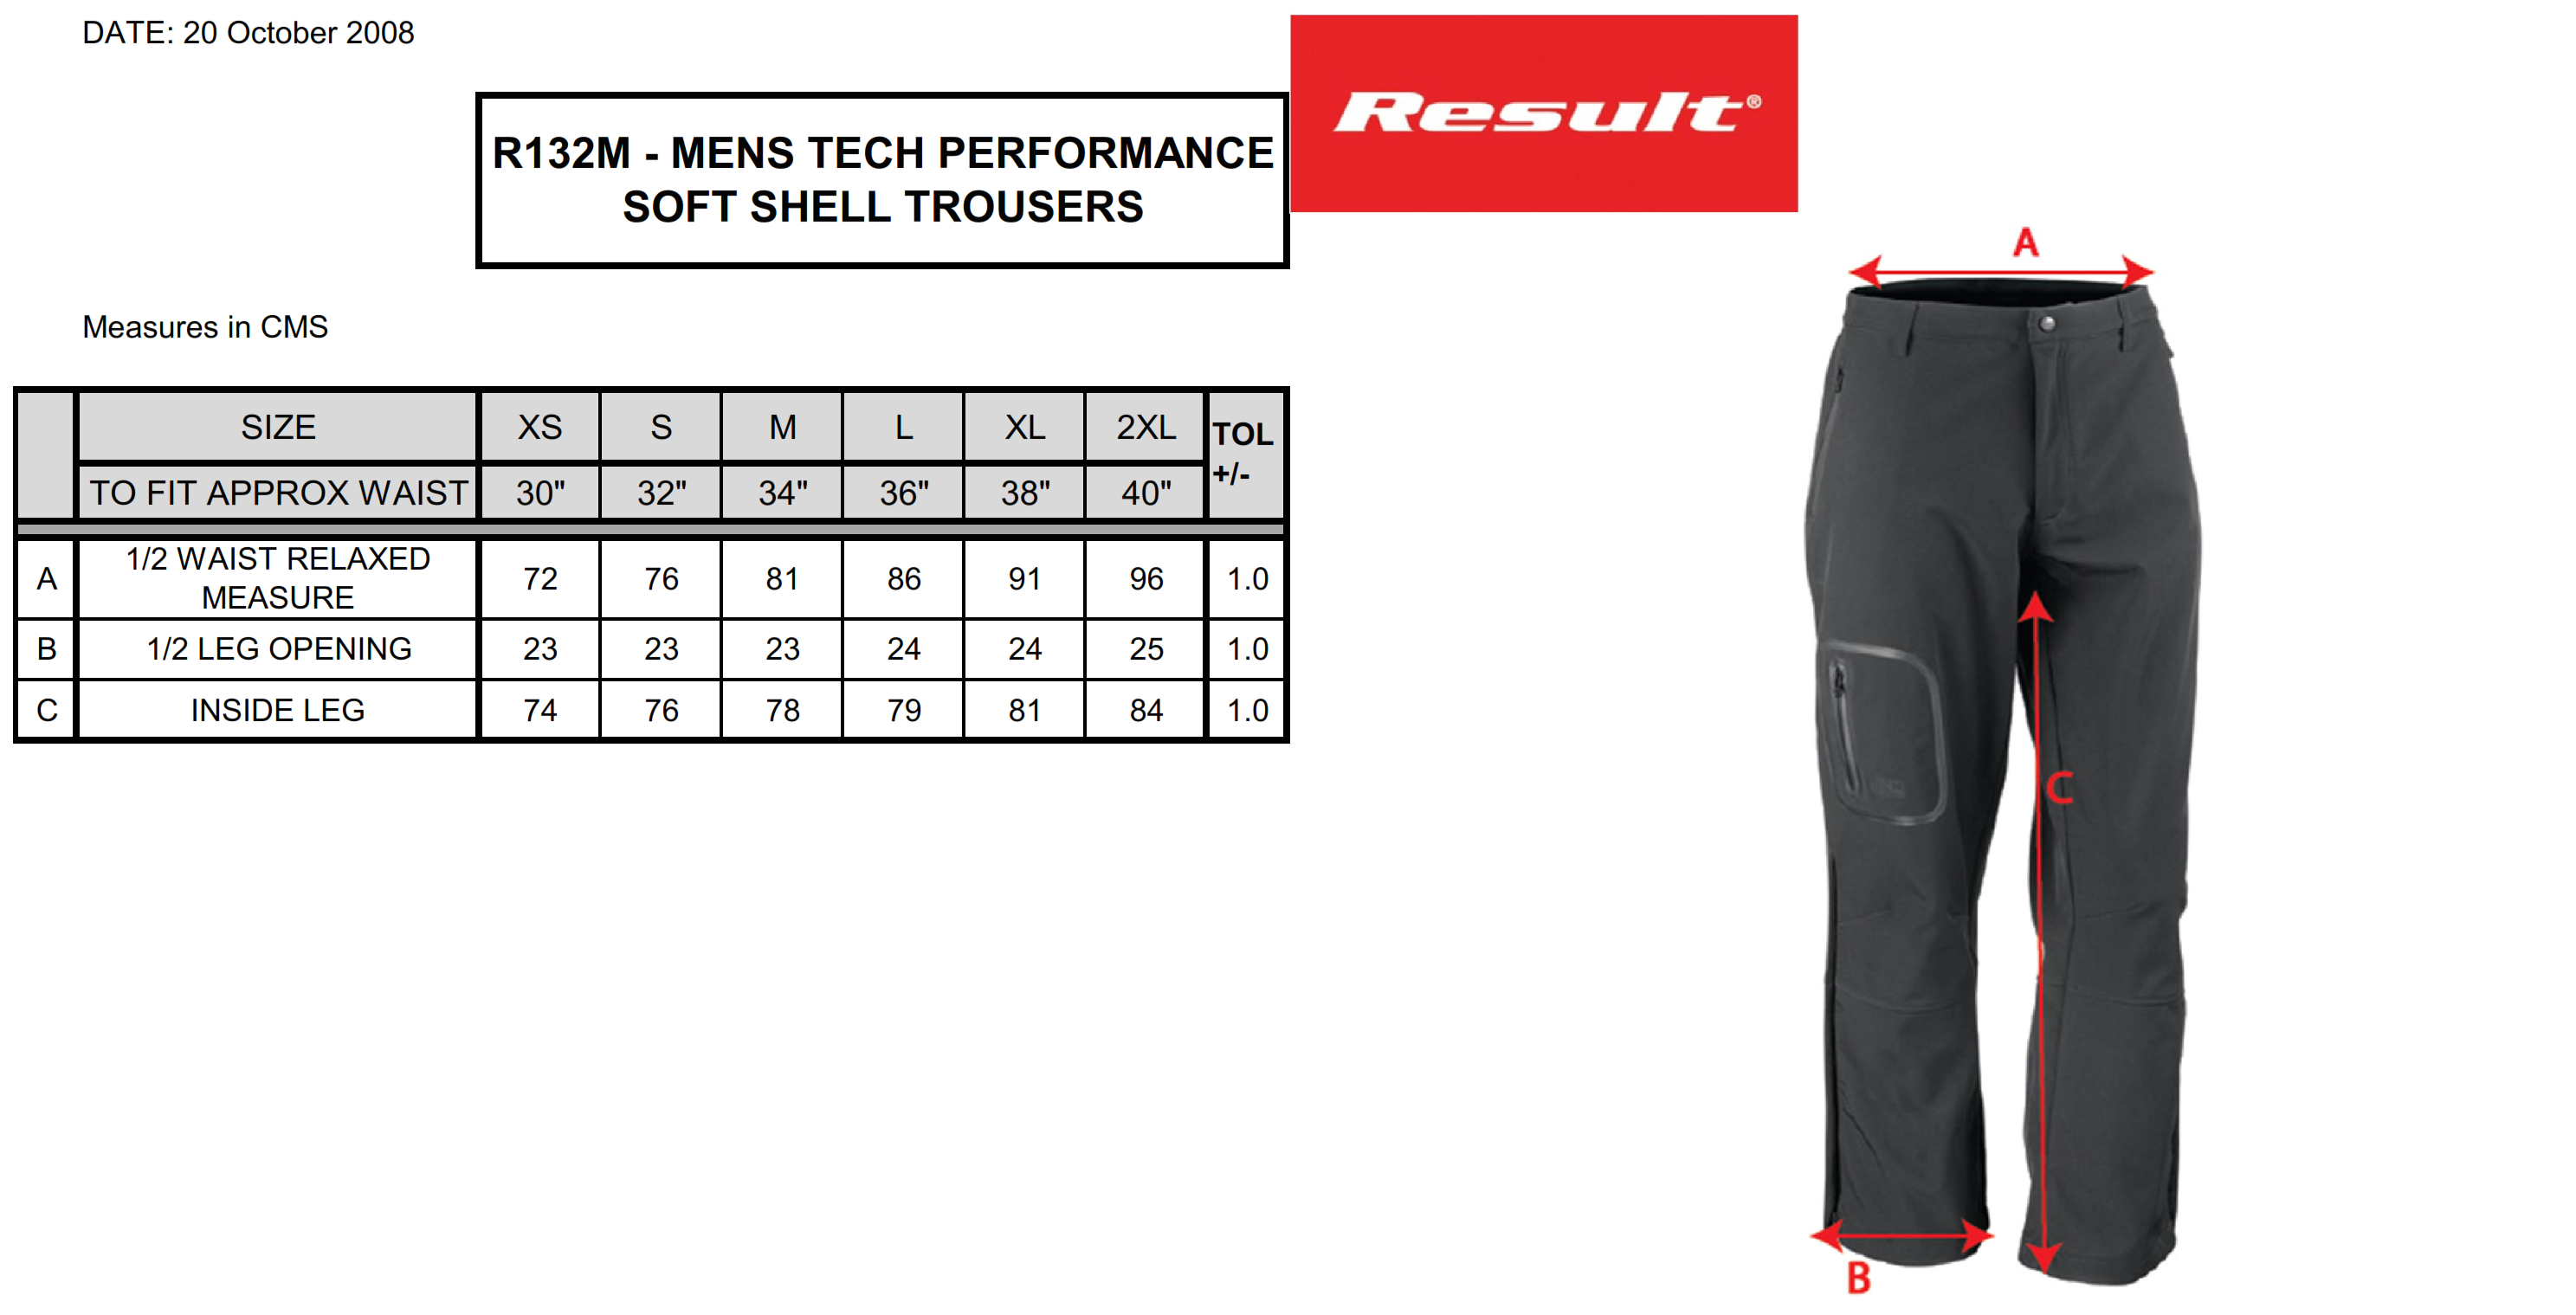 Result: Performance Soft Shell Trousers R132M